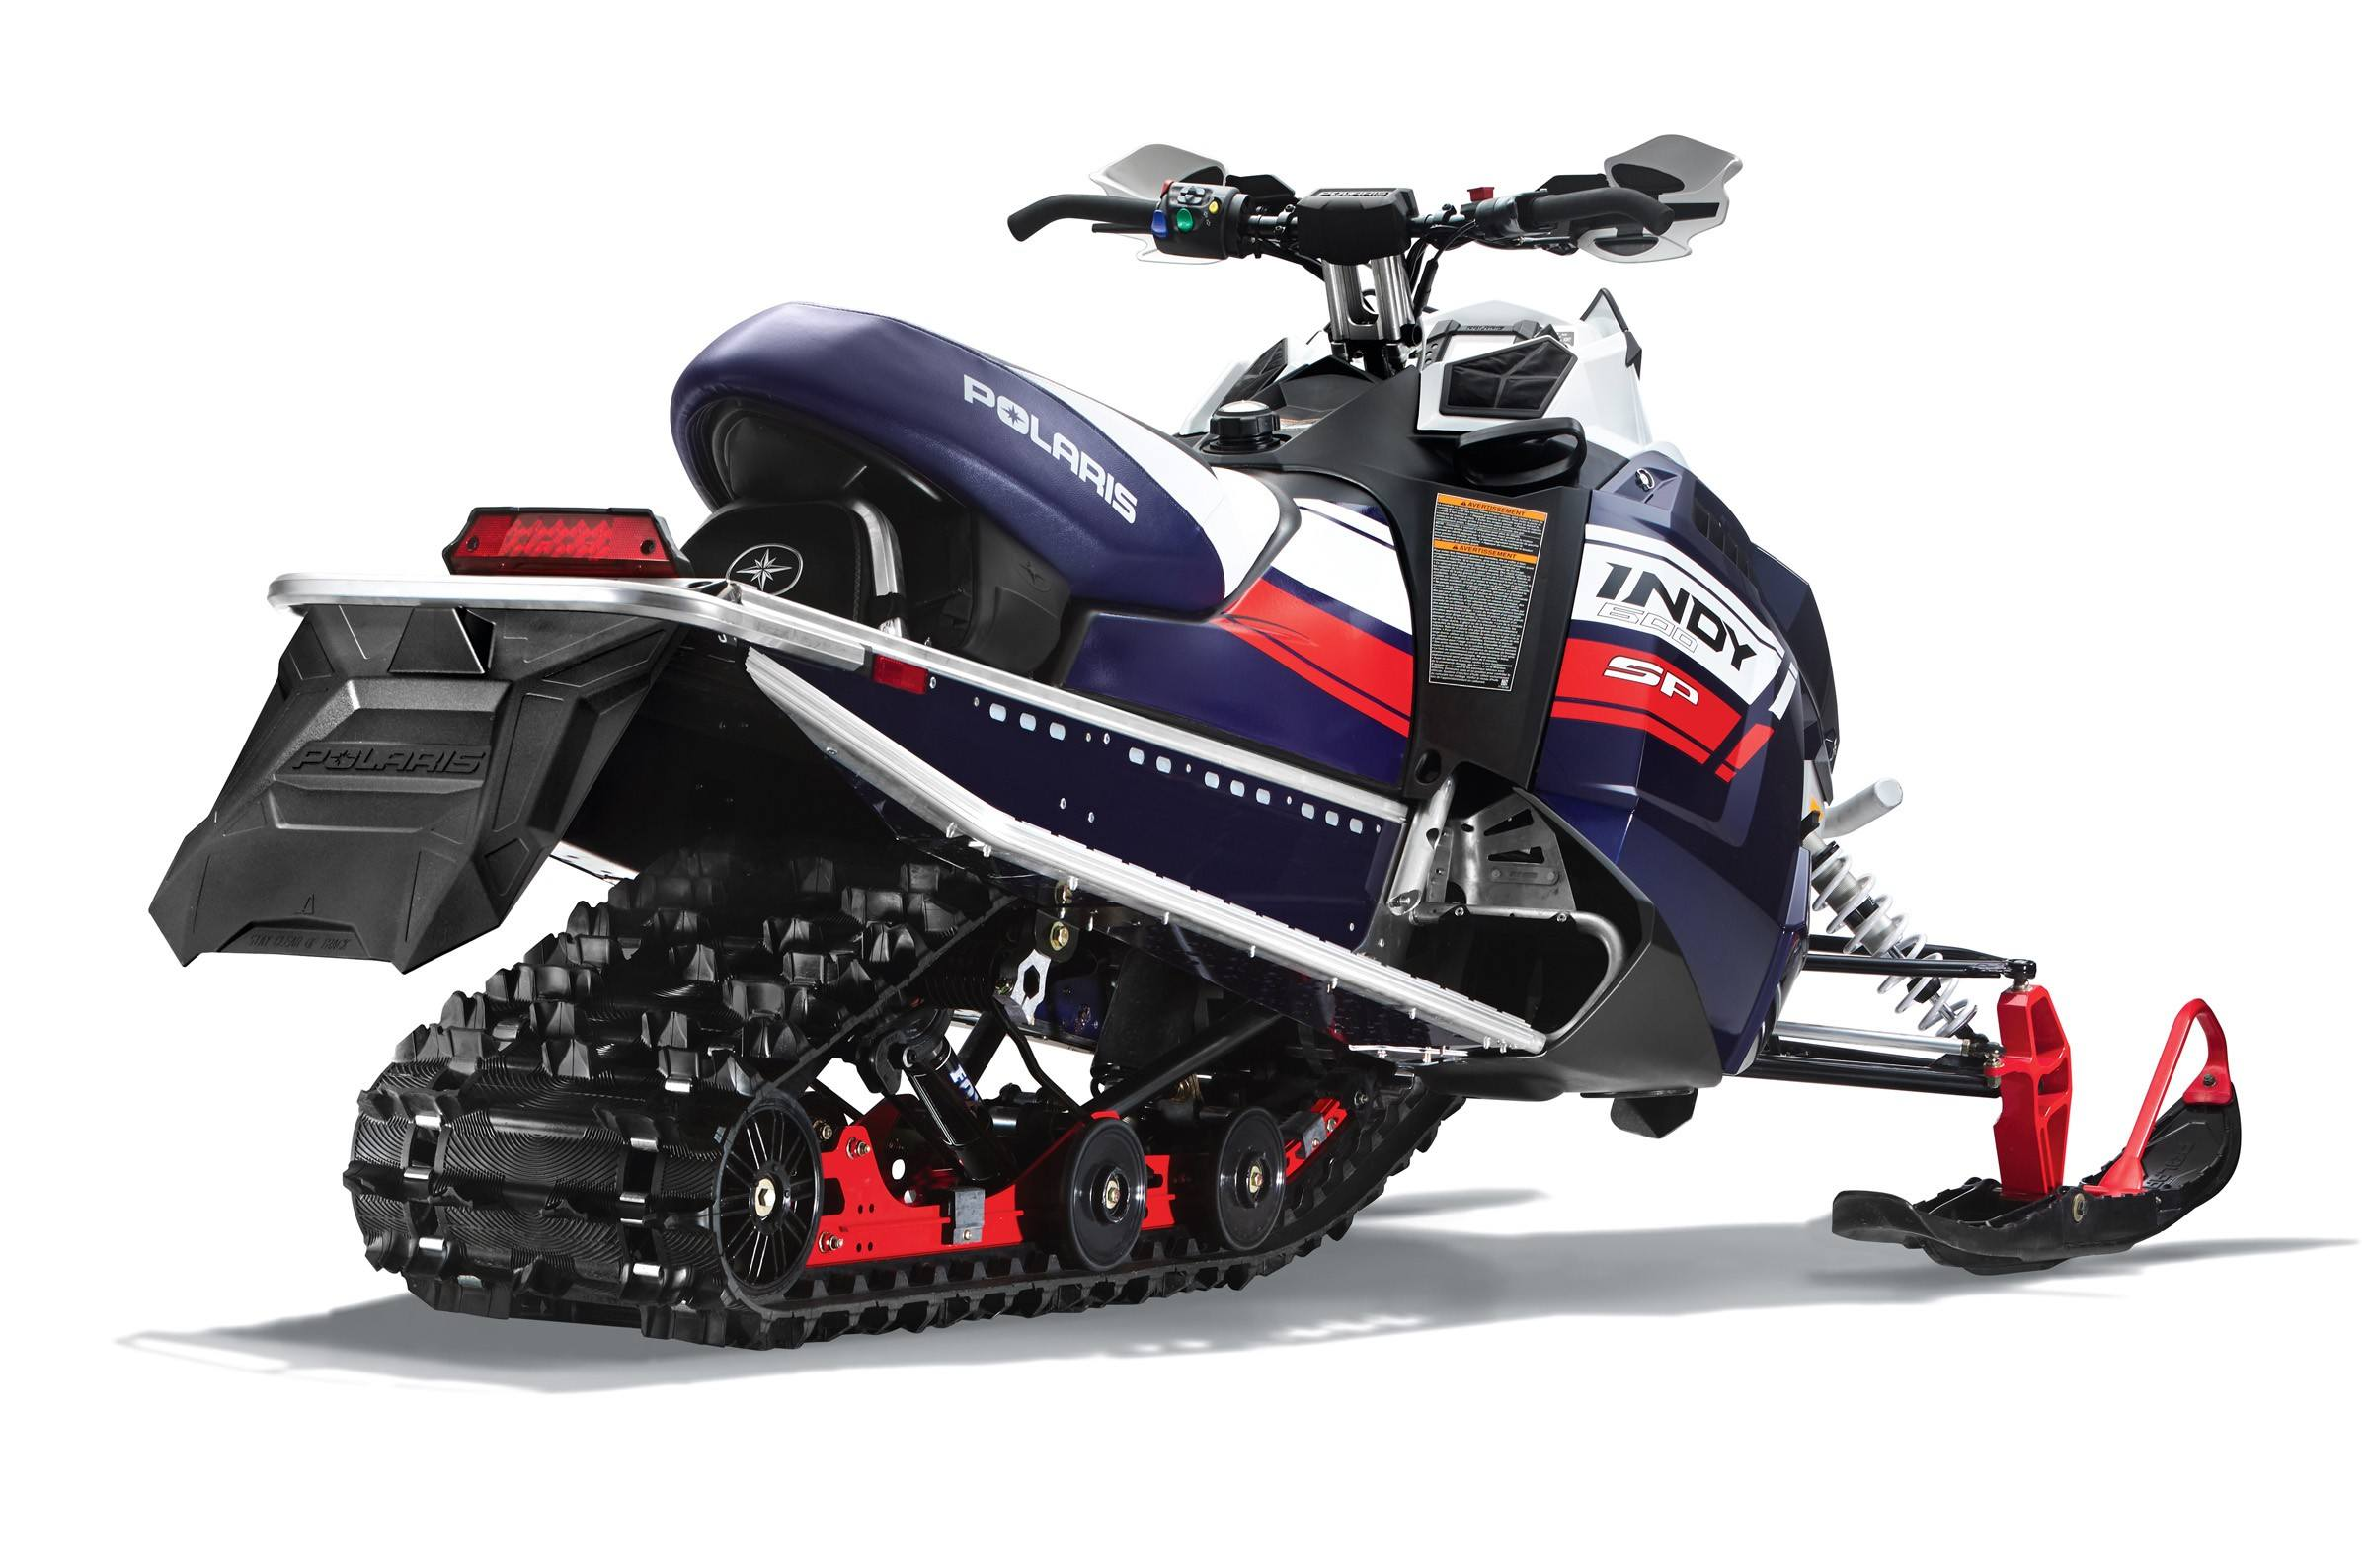 2016 Polaris 600 INDY SP TD Series LE SE in Dillon, Montana